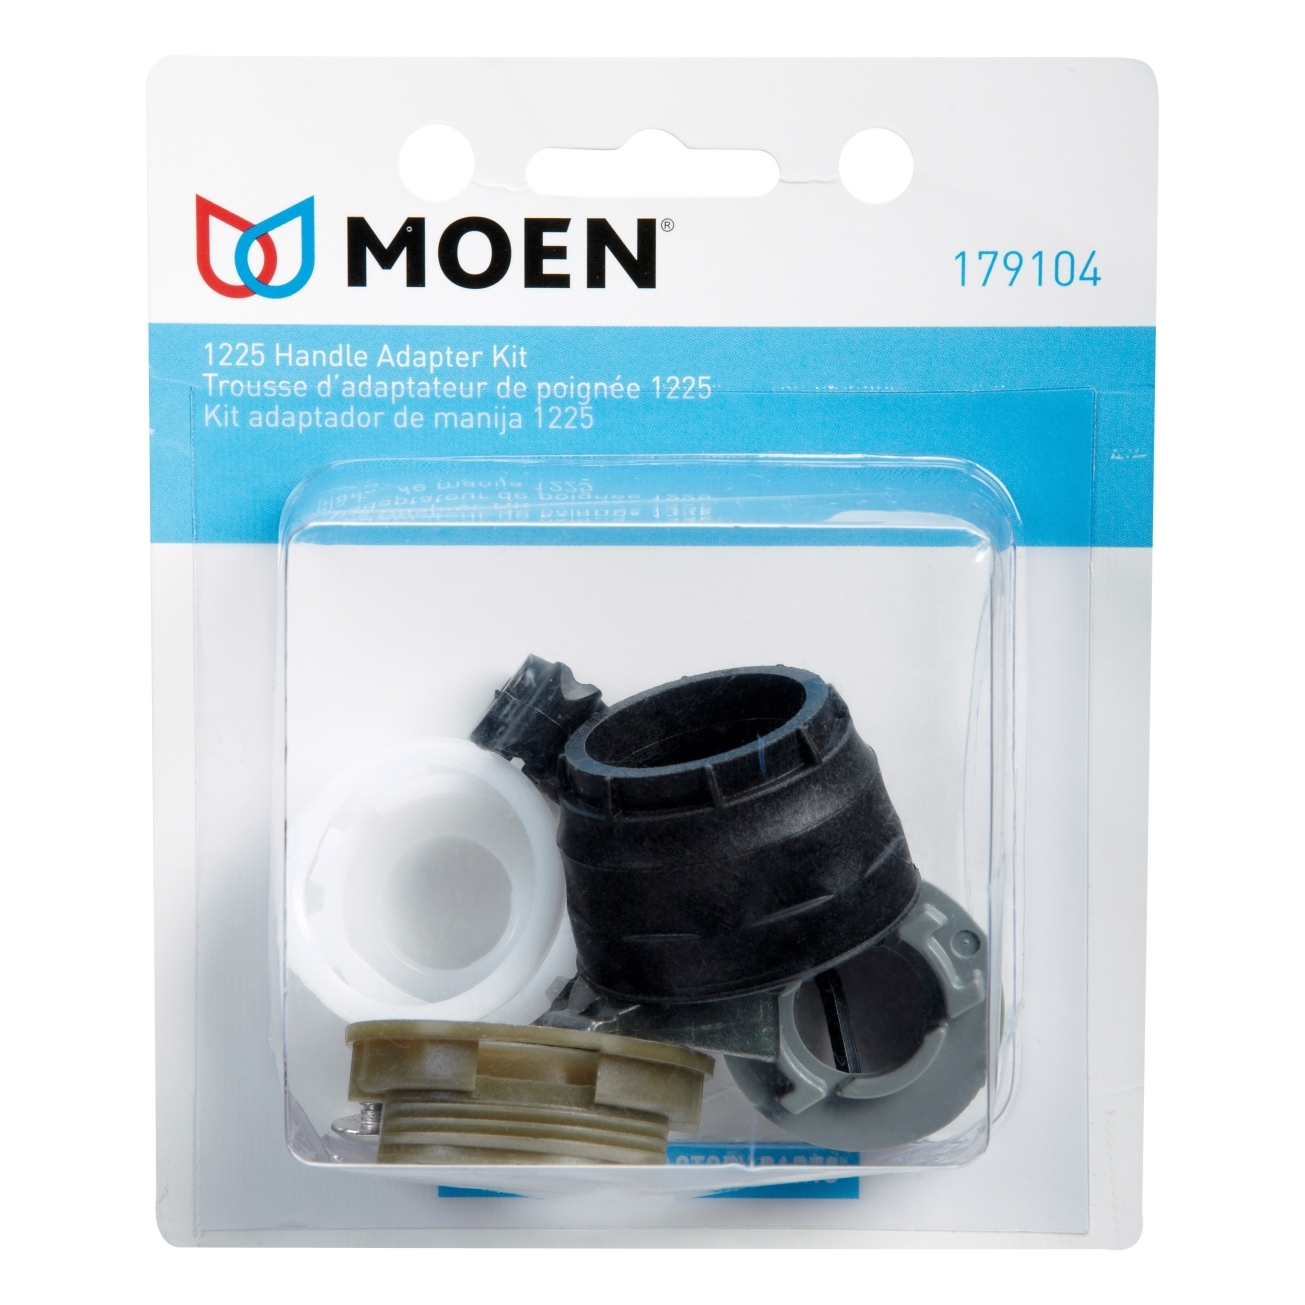 Ideas, moen faucet parts and cartridge replacements at ace hardware with regard to proportions 1305 x 1305  .